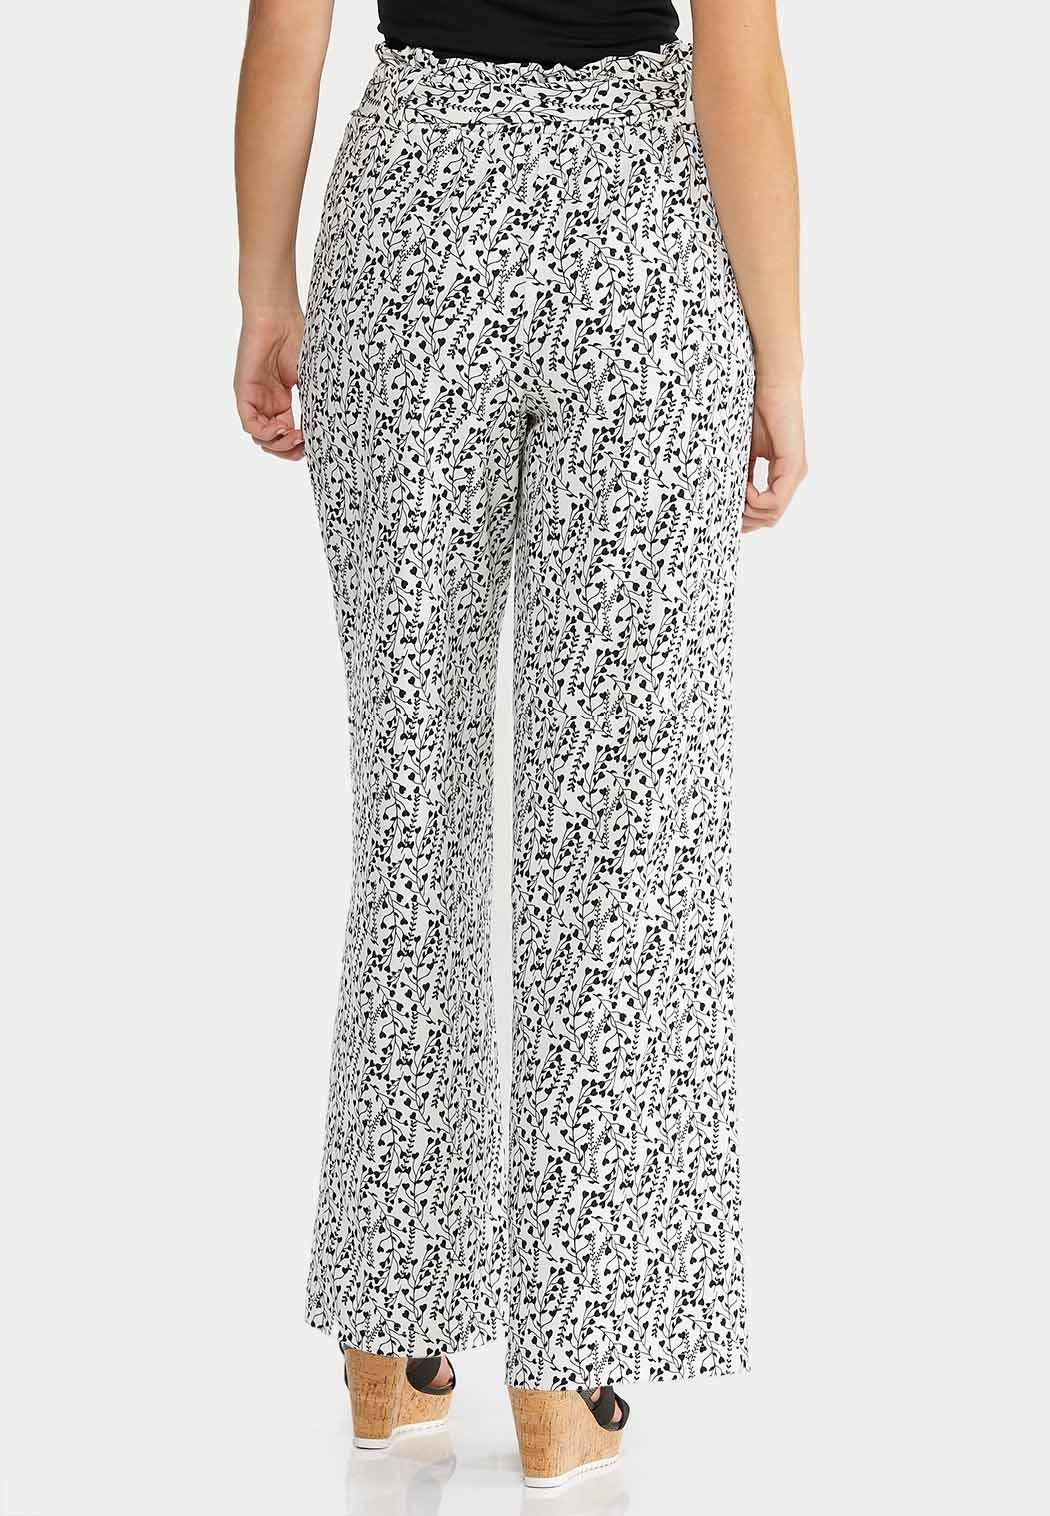 Petite Belted Heart Floral Pants (Item #44492998)